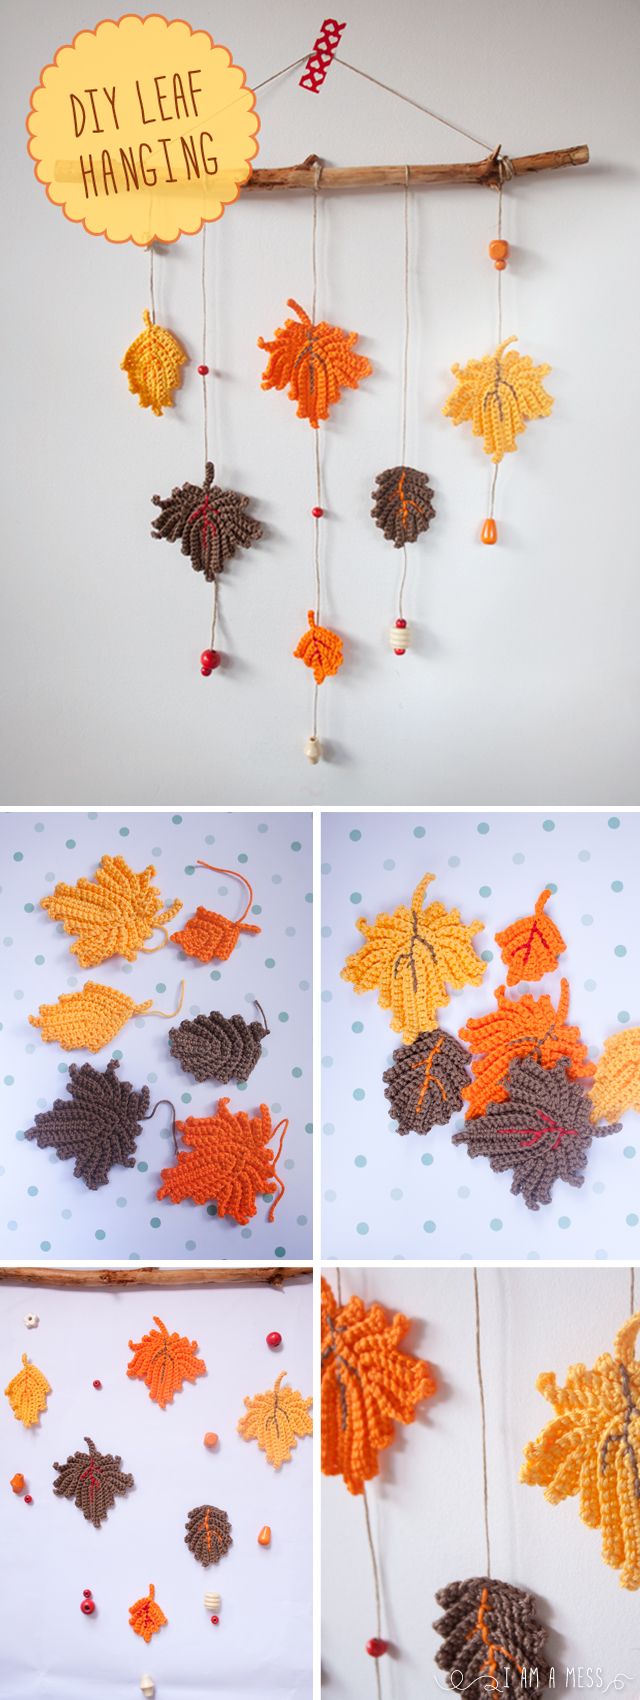 "DIY crochet hanging leafs by ""I am a Mess"""